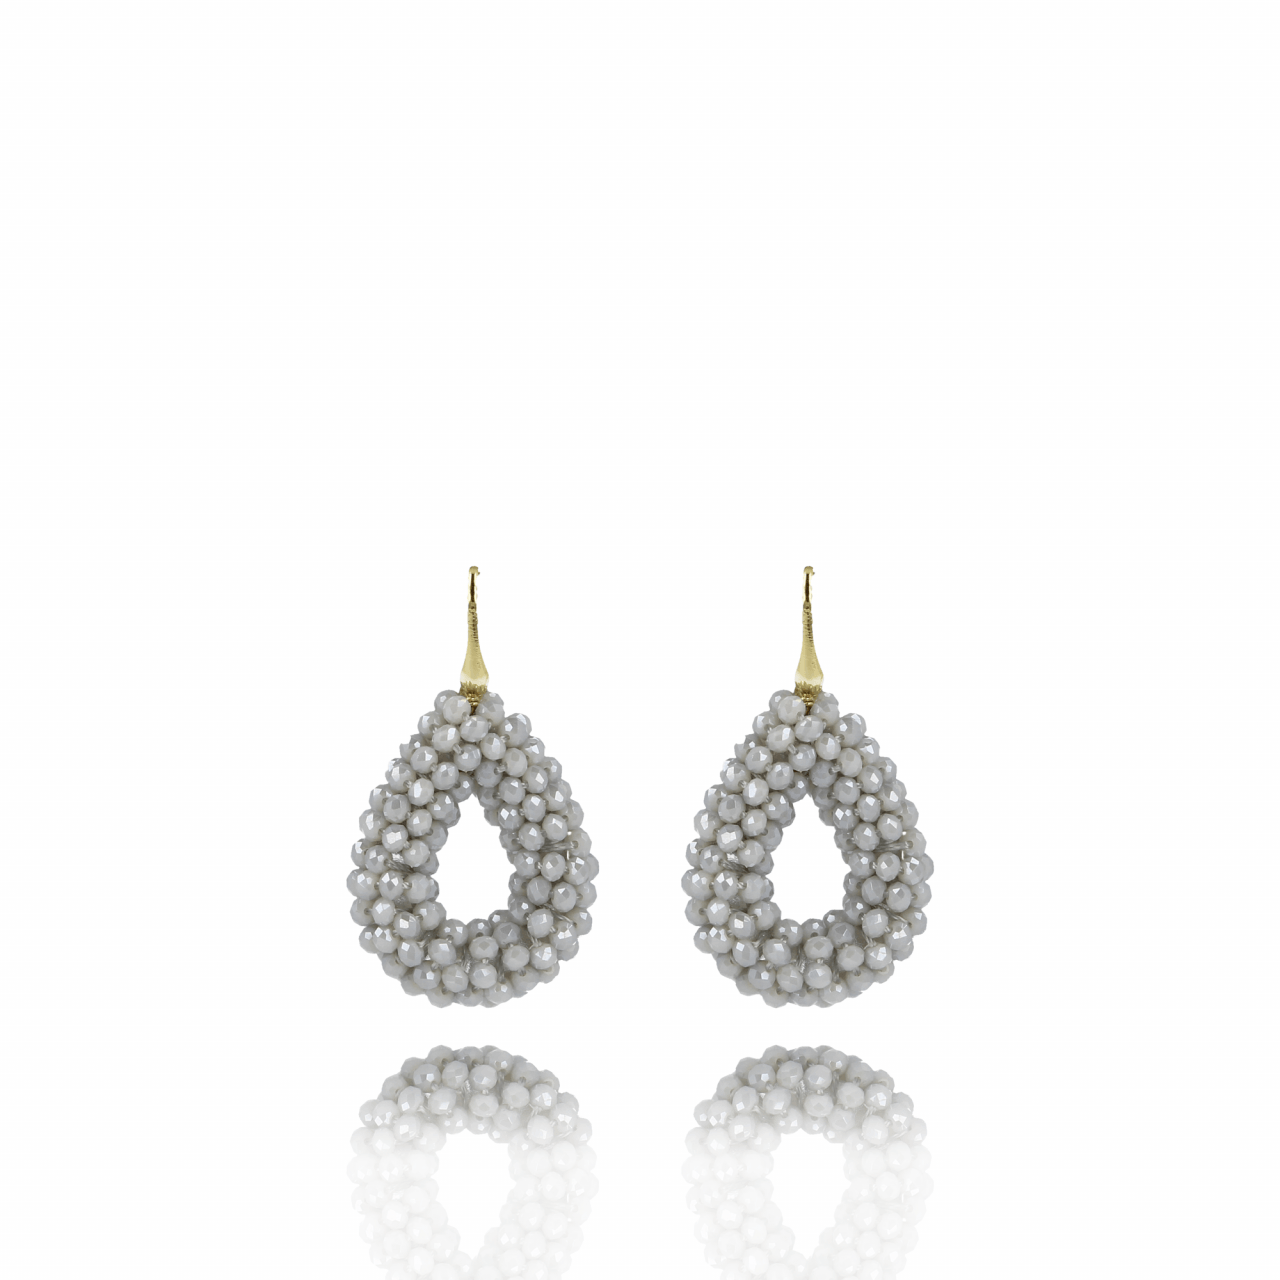 Light-grey glassberry drop S earrings